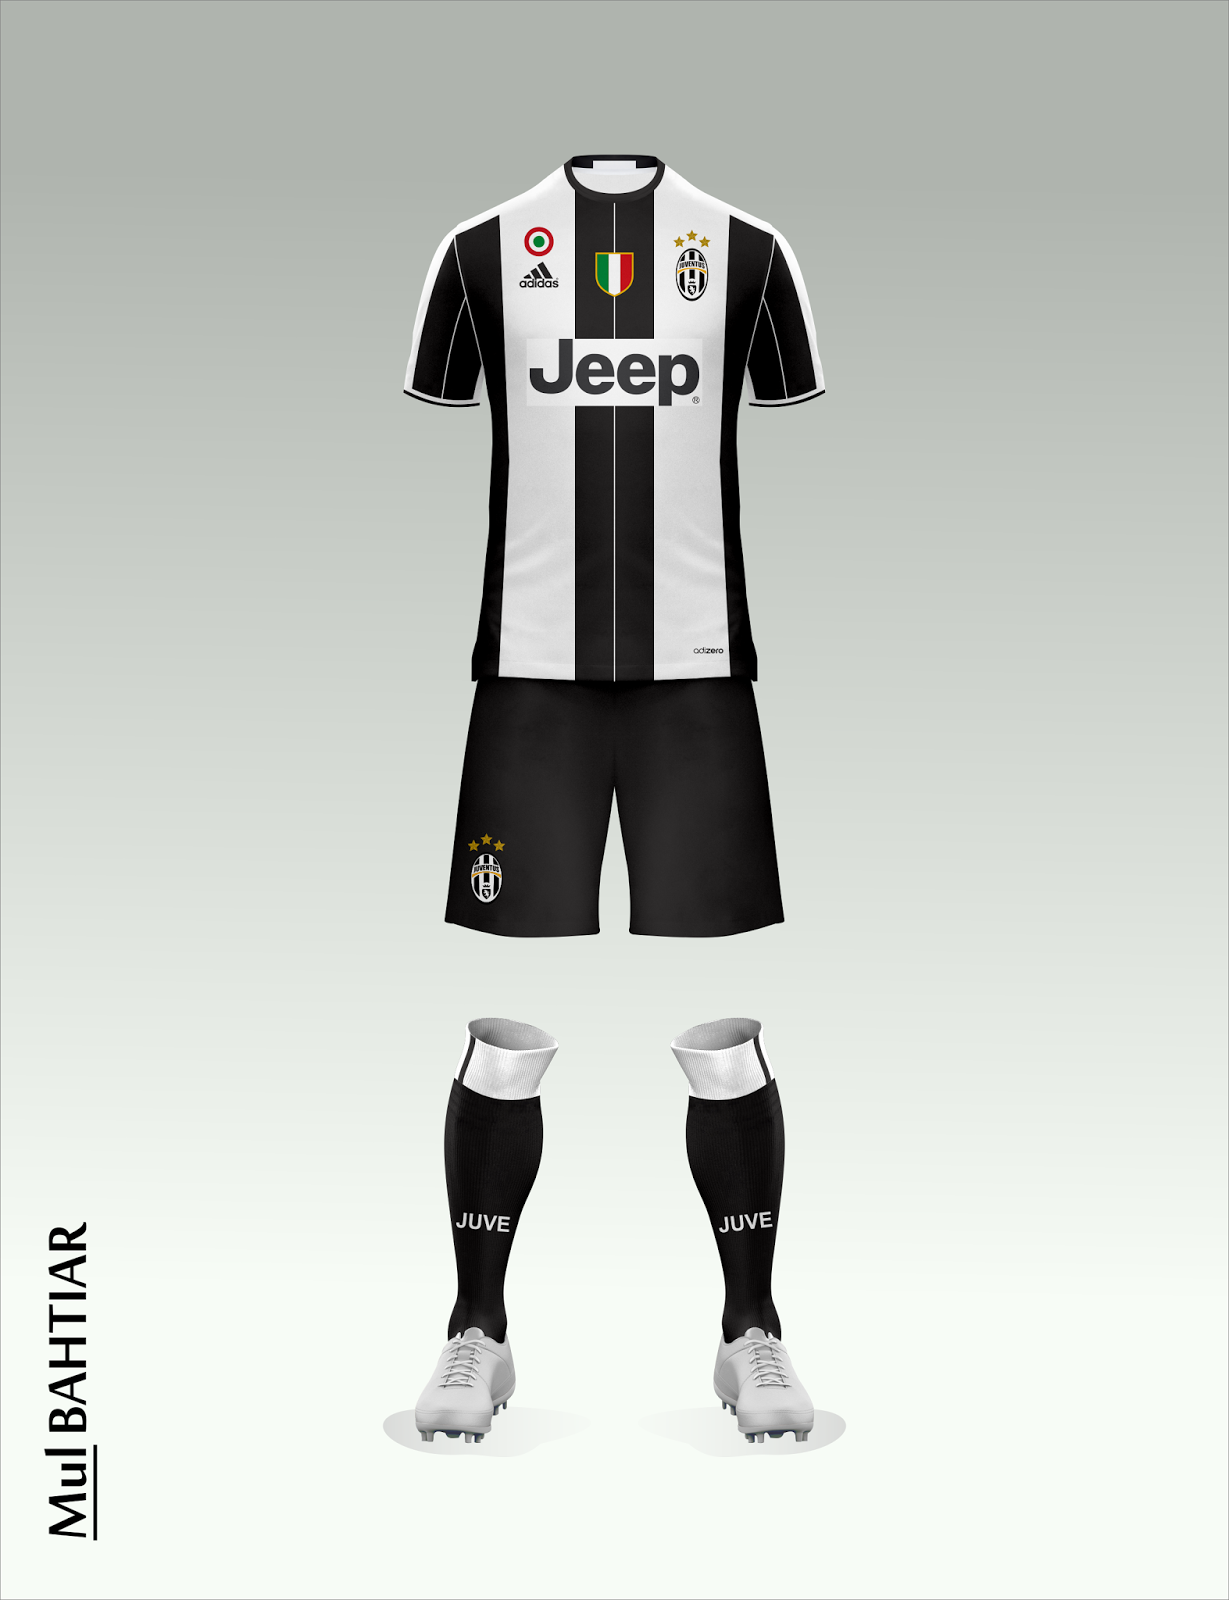 2016 2017 Juventus Kits Released Mulbach Design